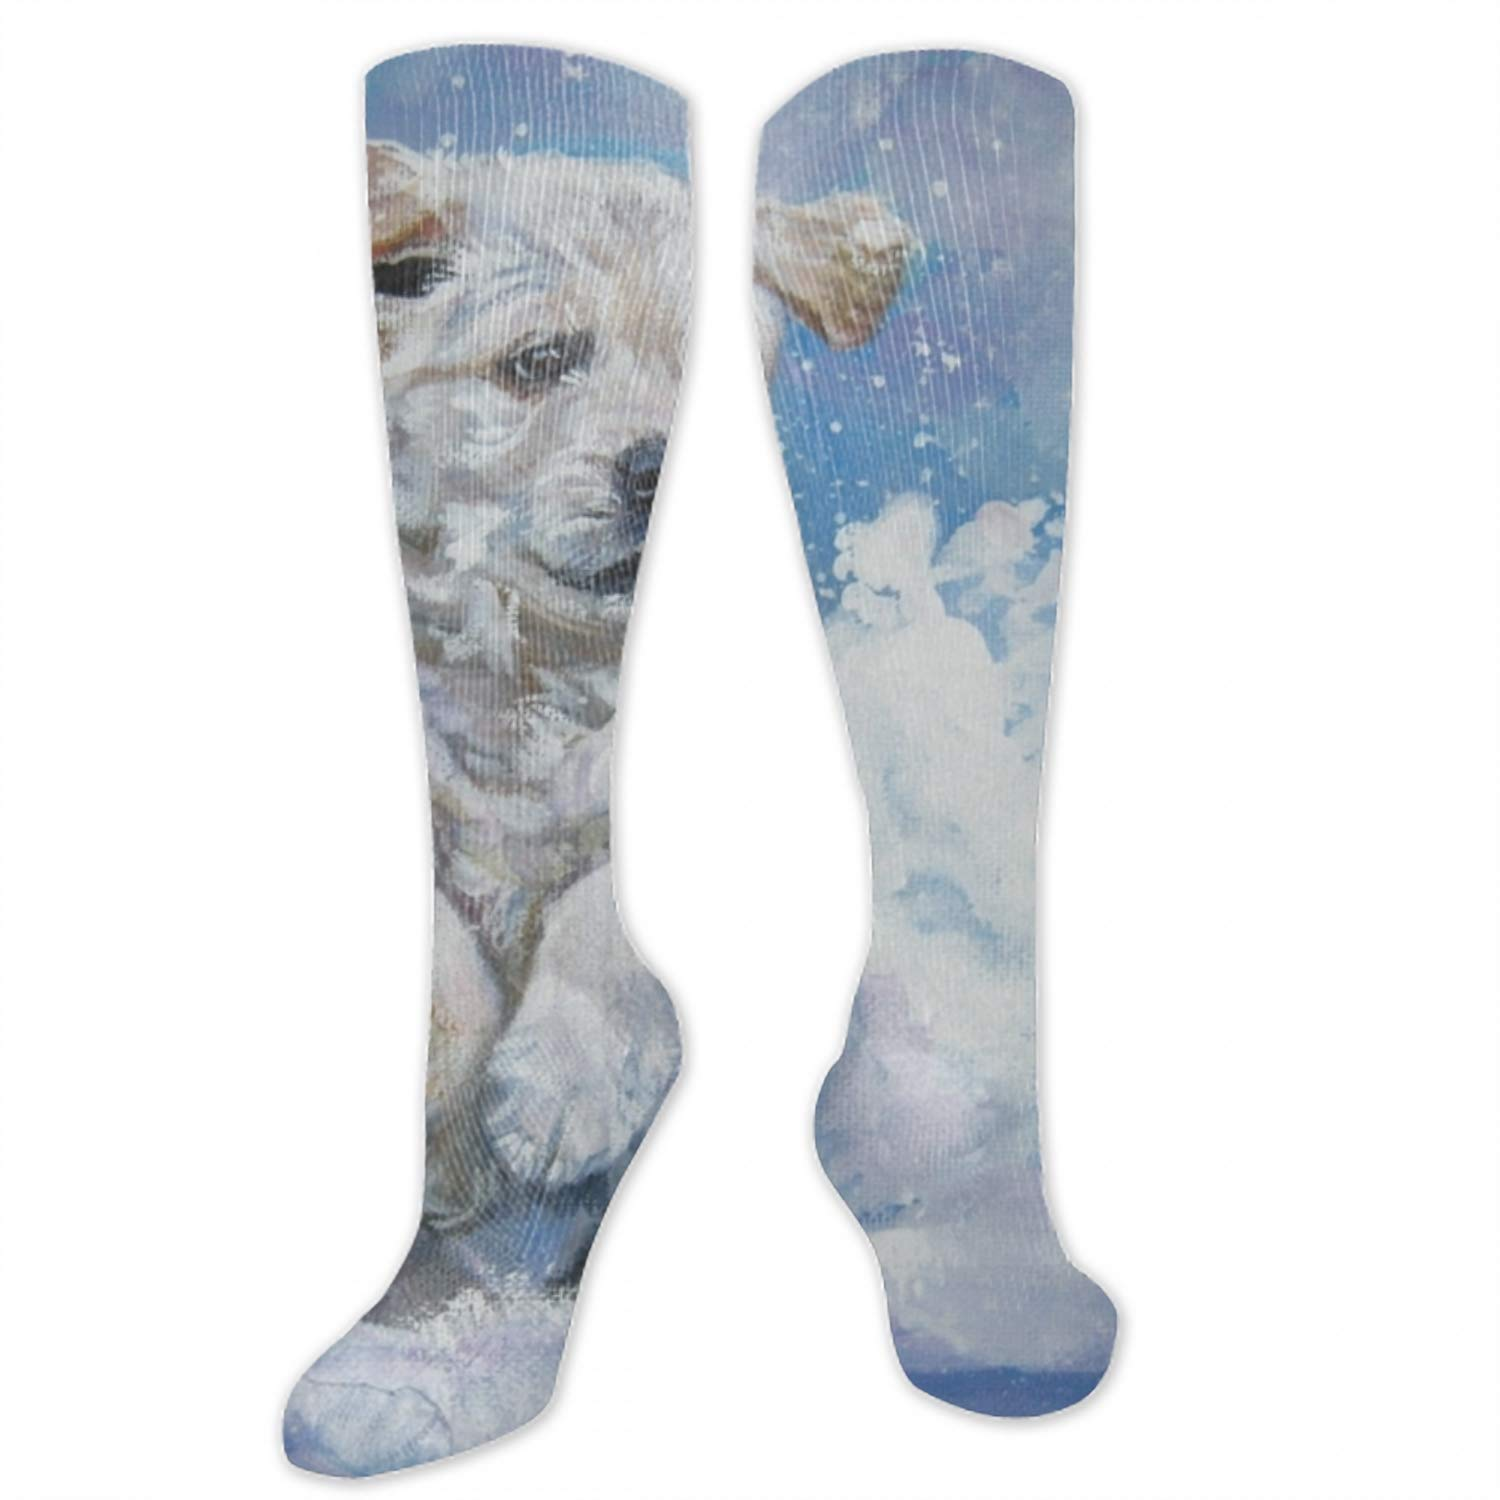 Golden Puppy Digital Art Personality Fashion Casual Polyester Socks